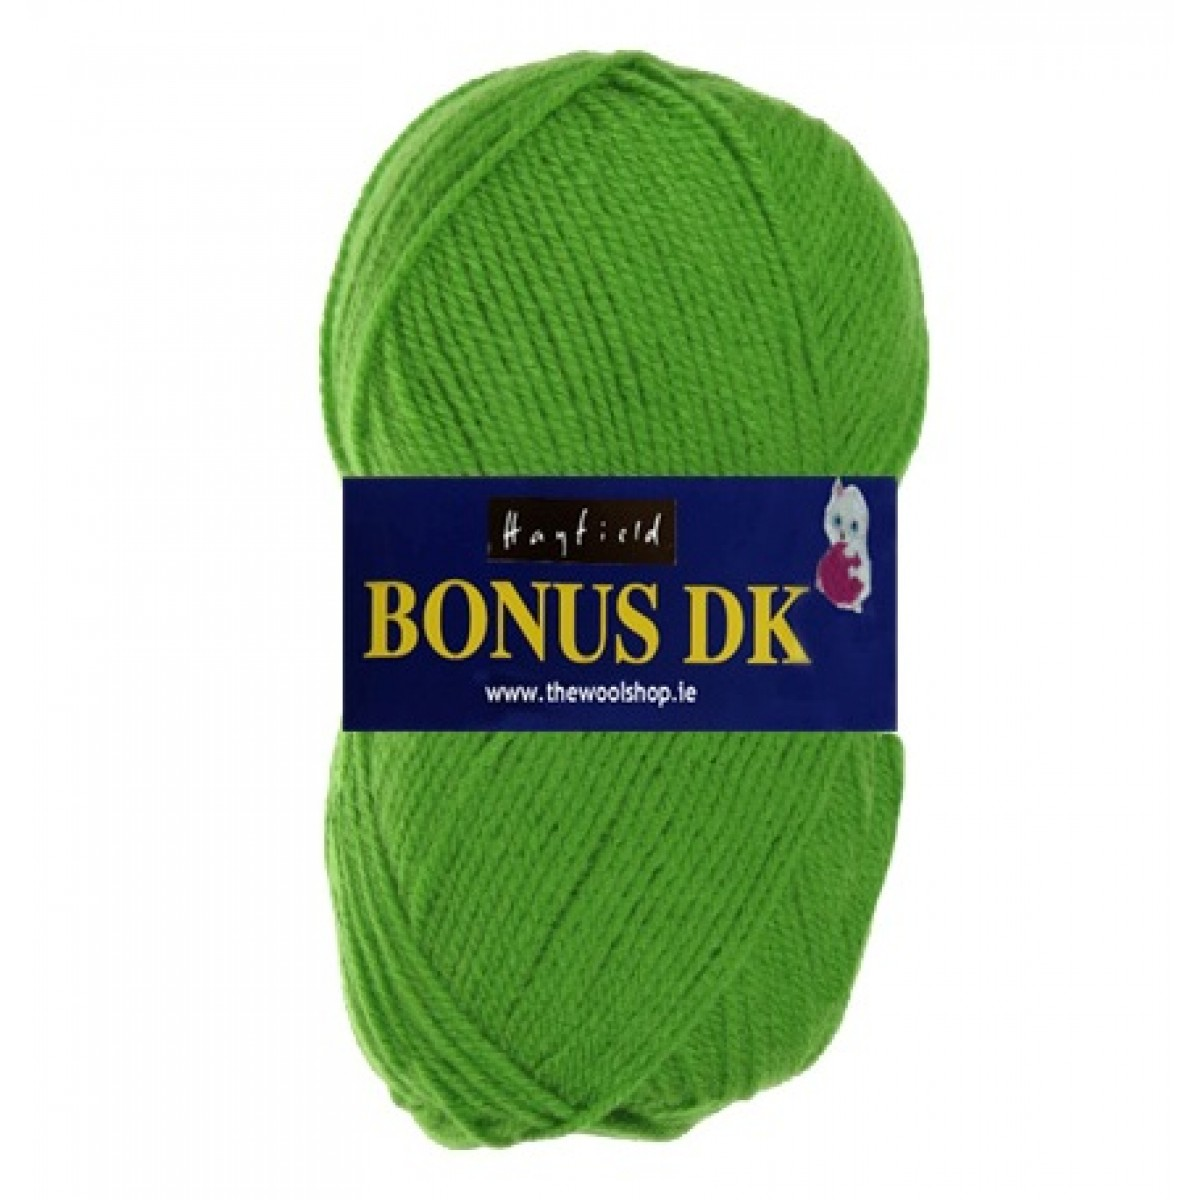 Hayfield Bonus DK Wool - Lemongrass Green 699 - Knitting & Crochet Yarn